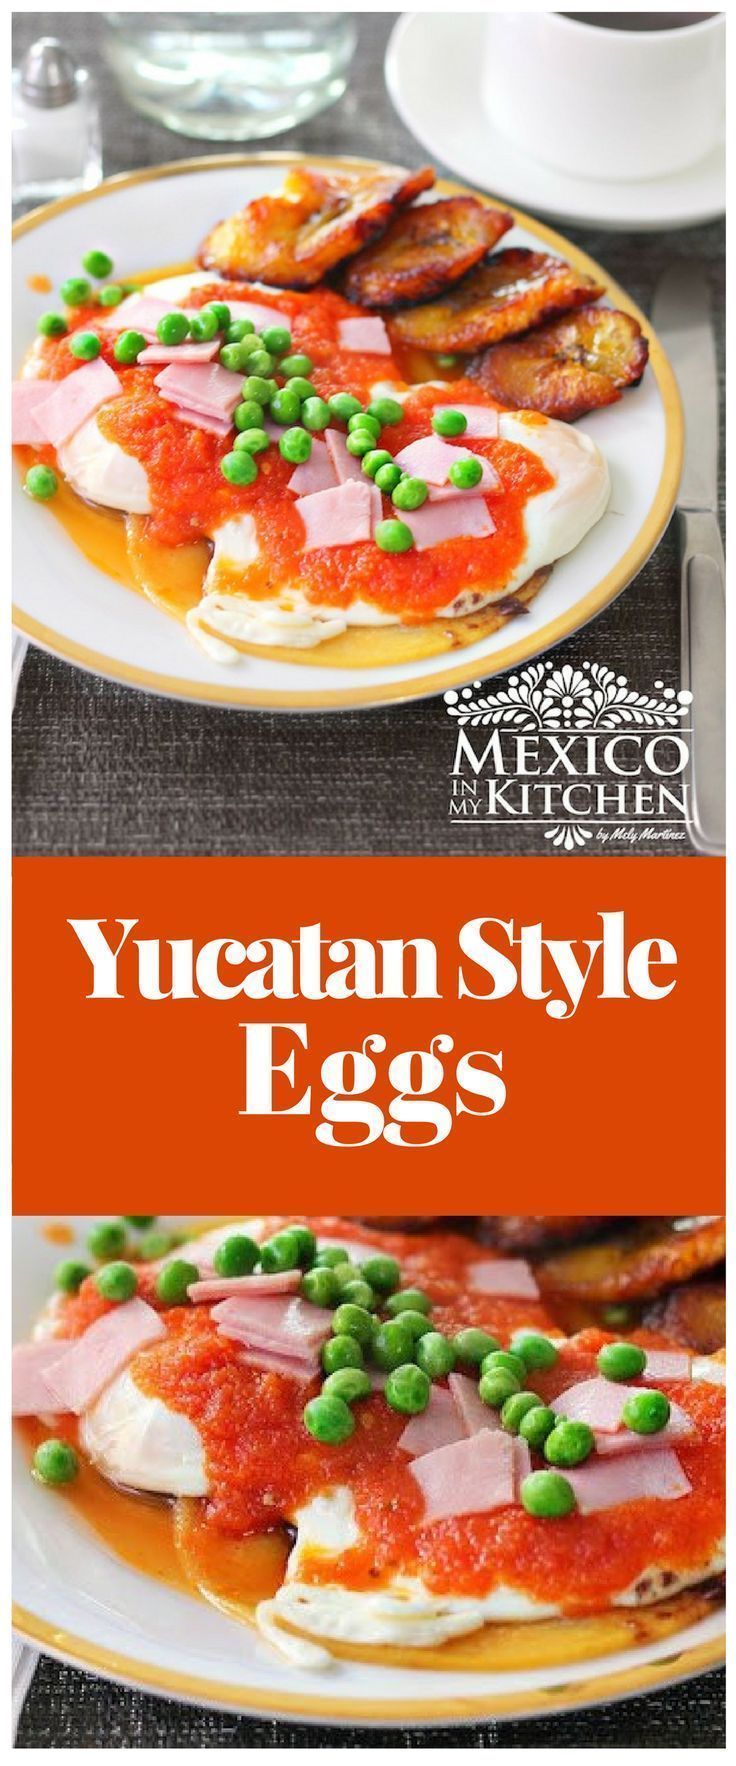 This recipe is based on the Traditional eggs made in the picturesque small town of Motul in the State of Yucatán. #recipe #mexican #food #breakfast